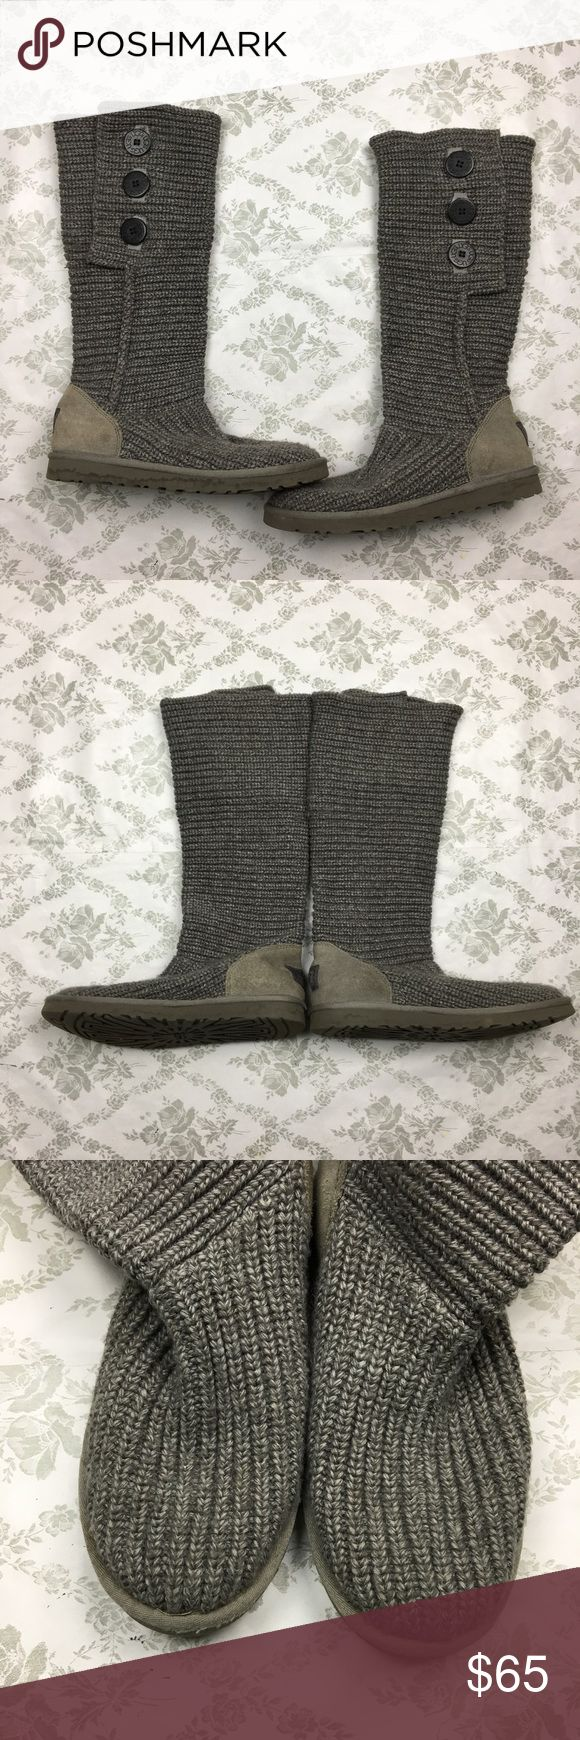 Ugg classic Cardy button boots sz 9 gray Pre loved good condition, minor signs of wear UGG Shoes Winter & Rain Boots